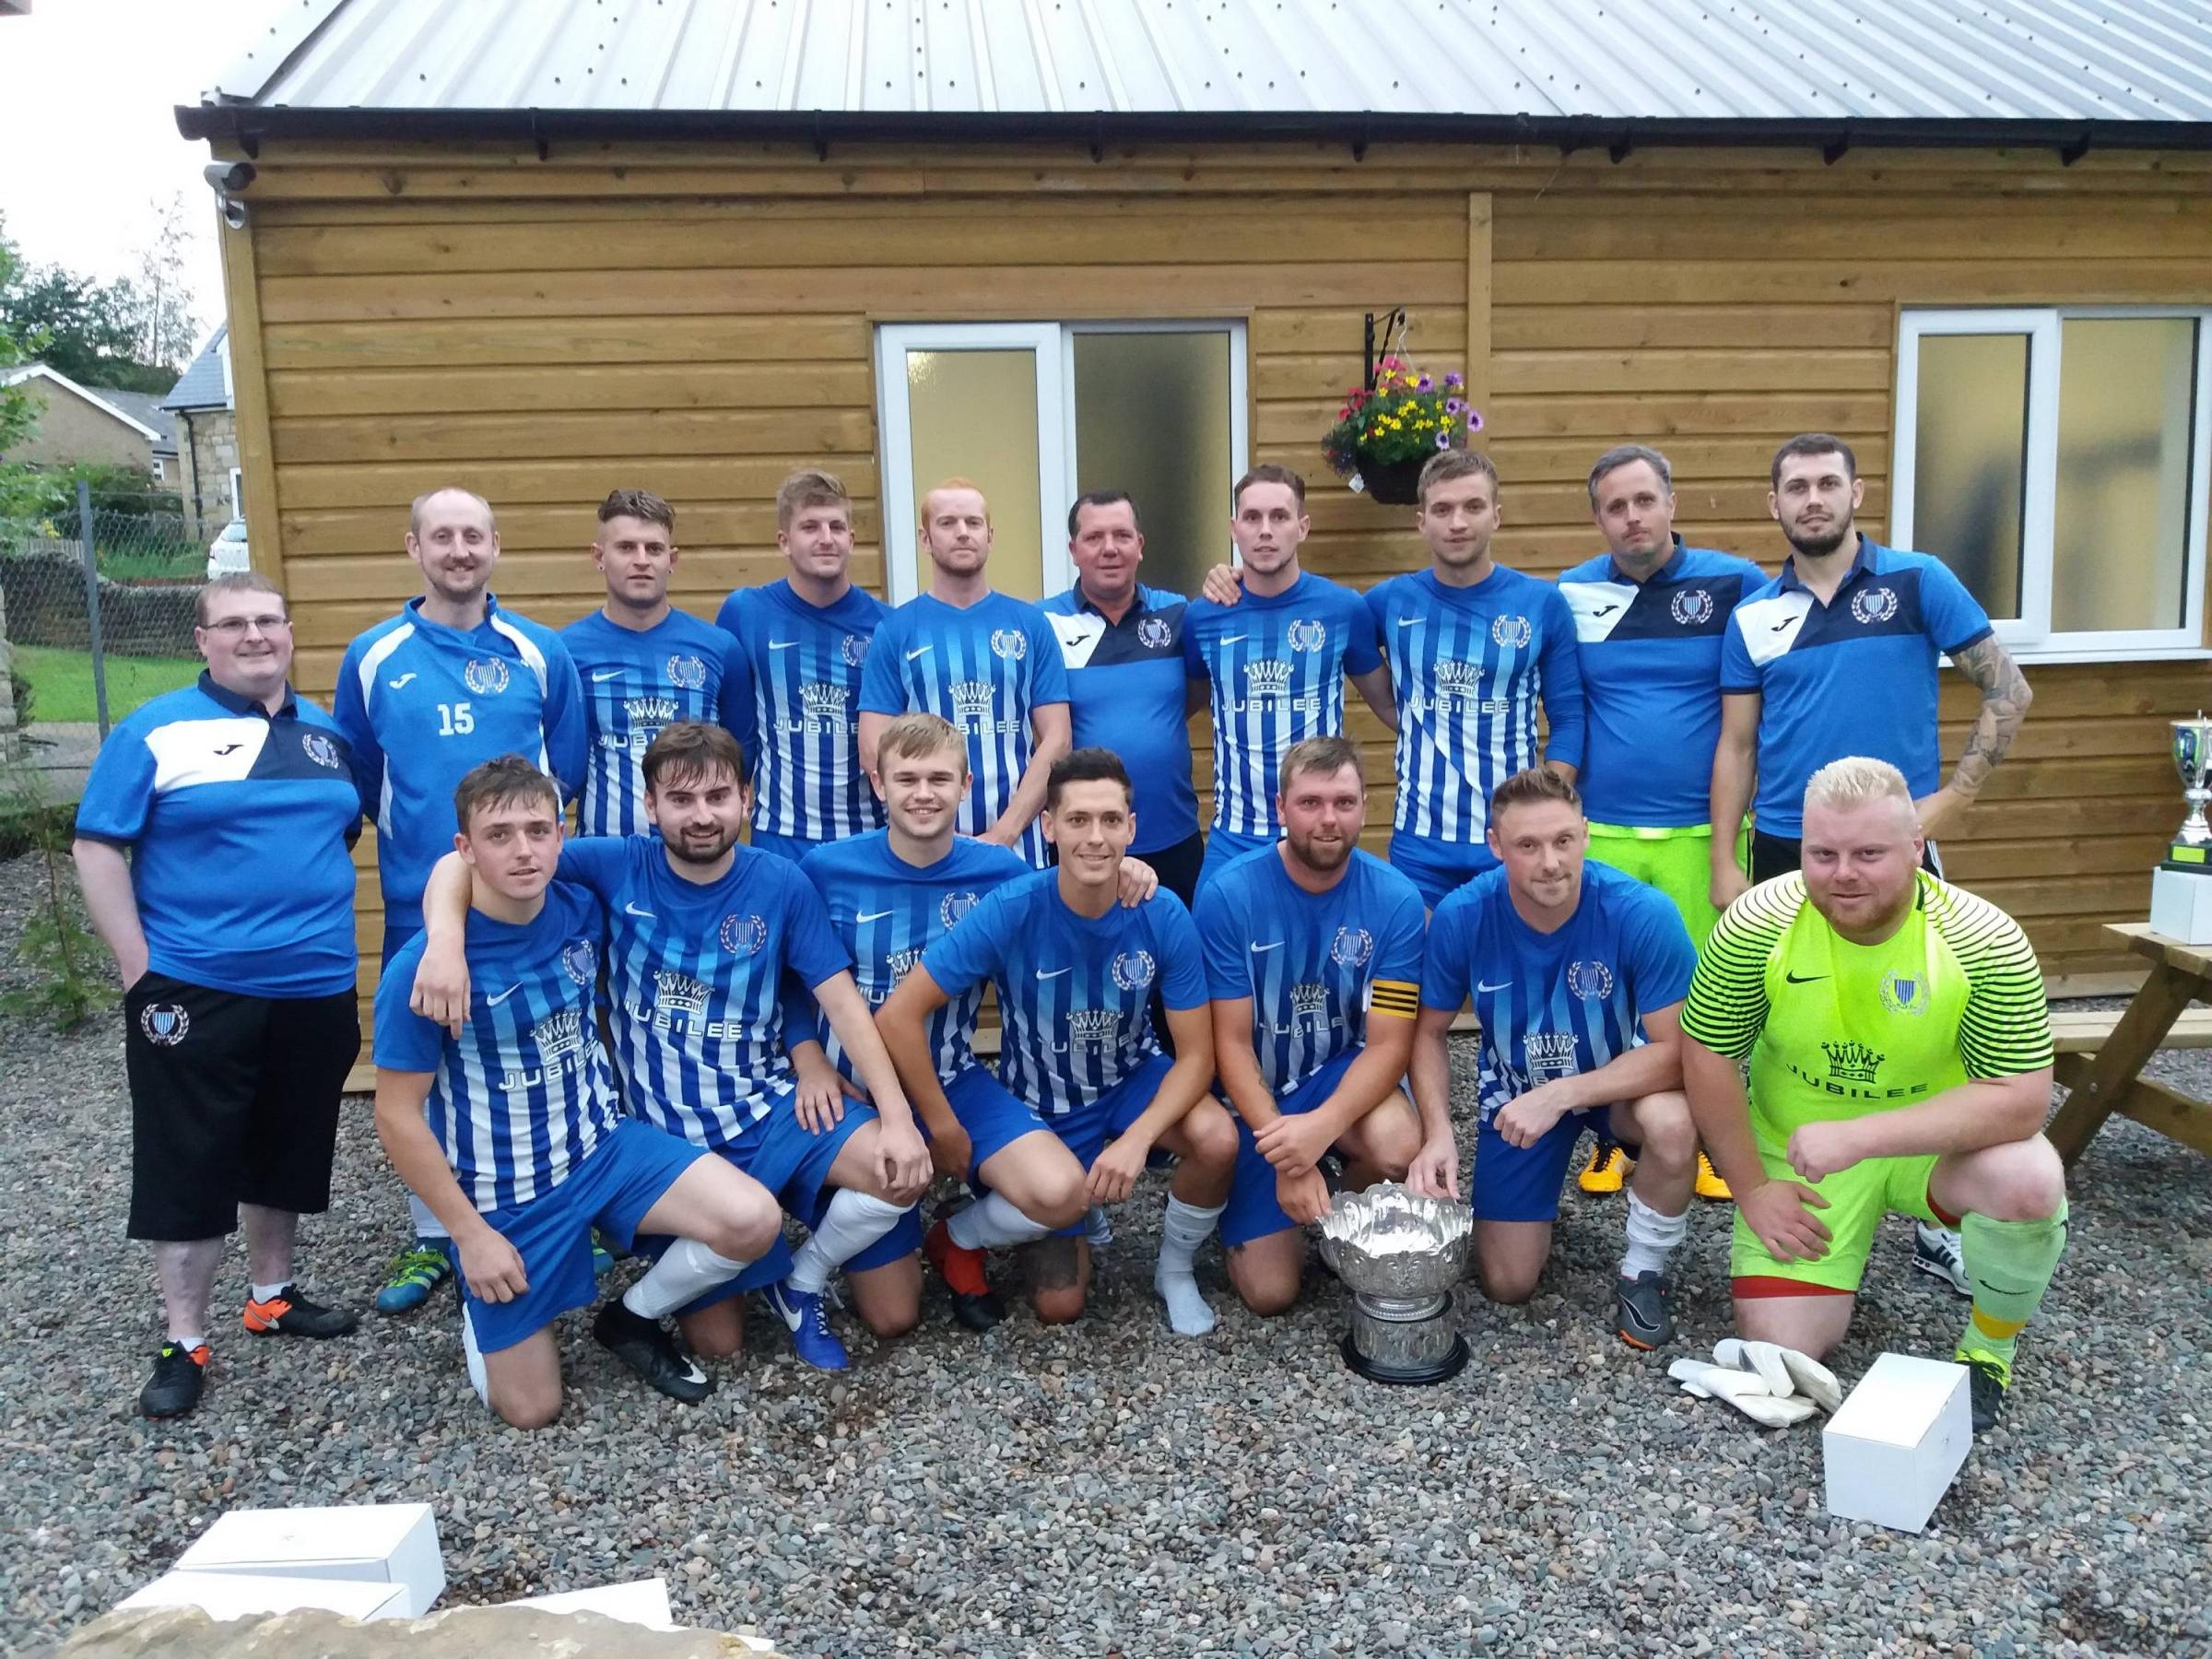 Haltwhistle Jubilee have built on last summer's Clayton Cup win, with an impressive season so far.